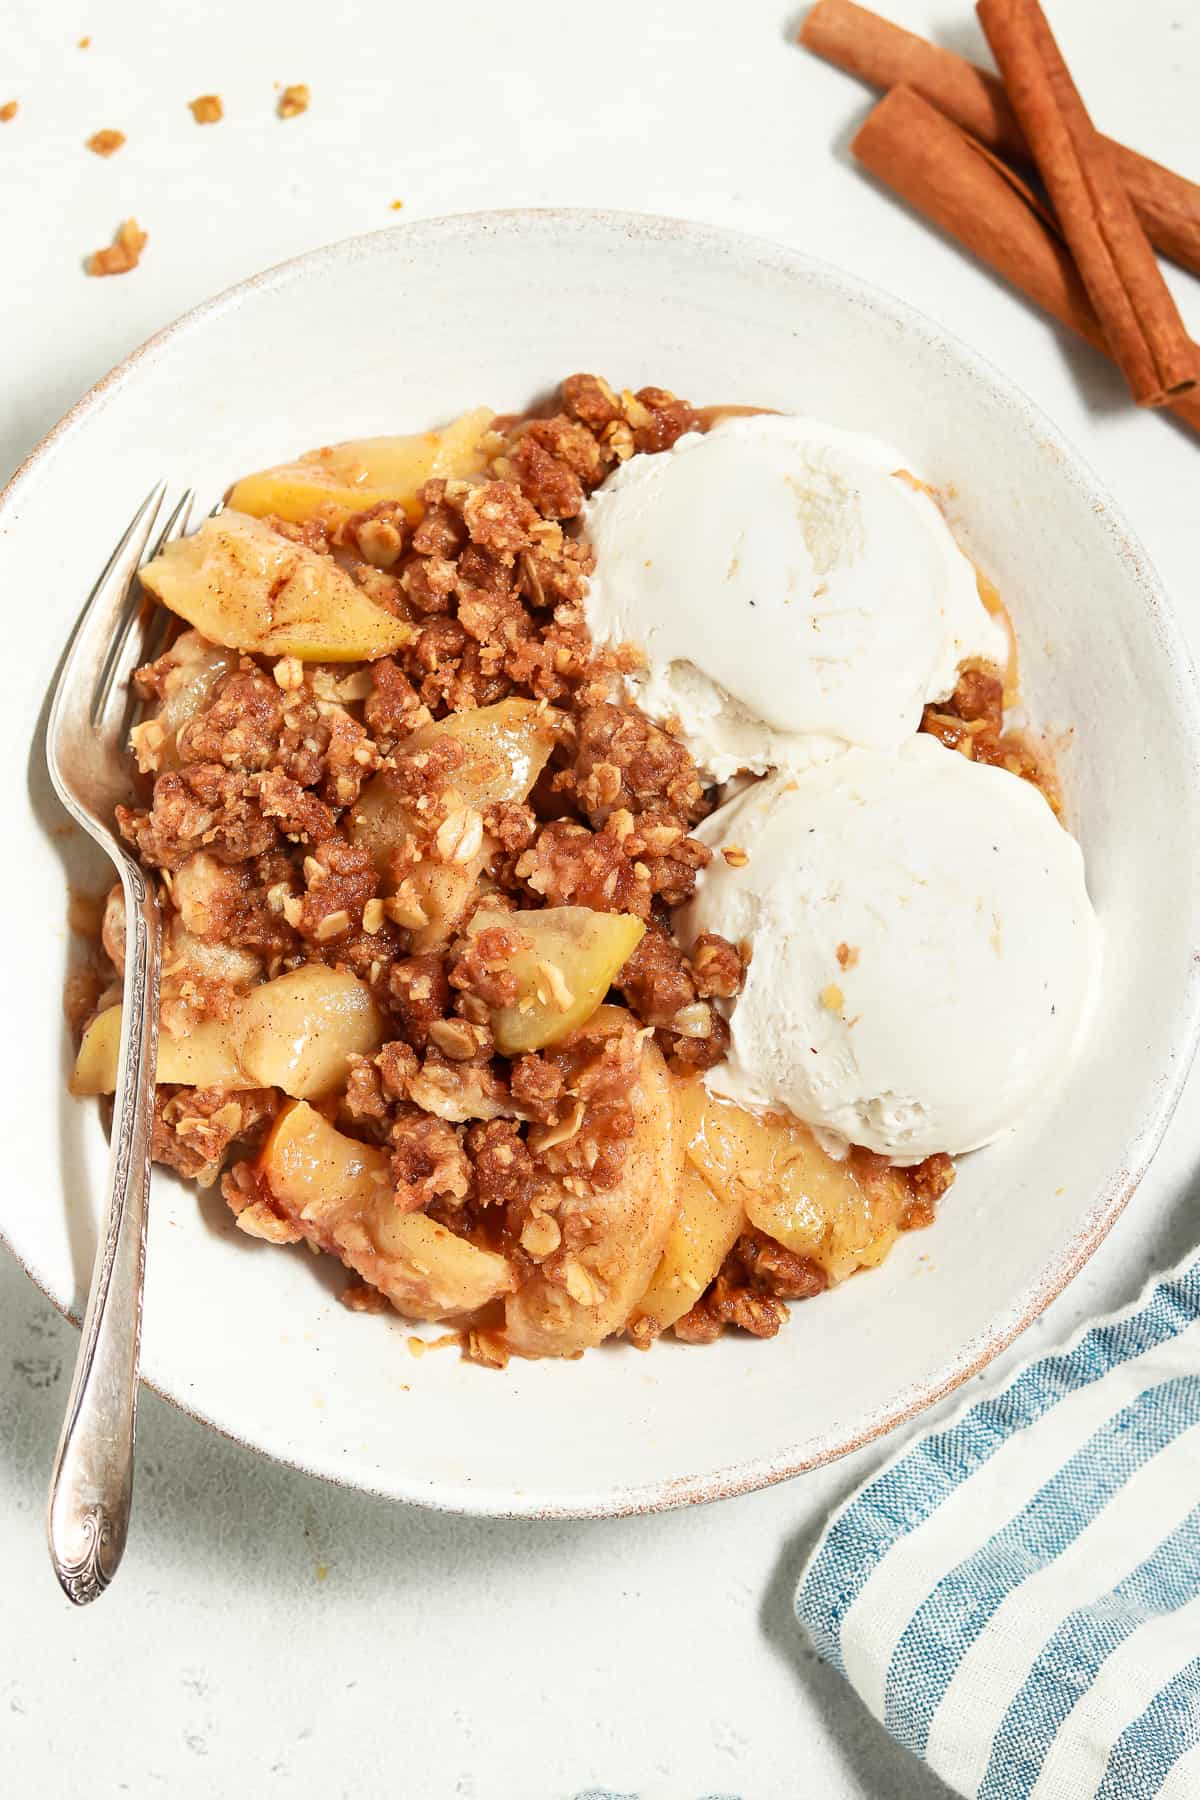 Close up view of apple crisp in a white bowl with ice cream on the side.